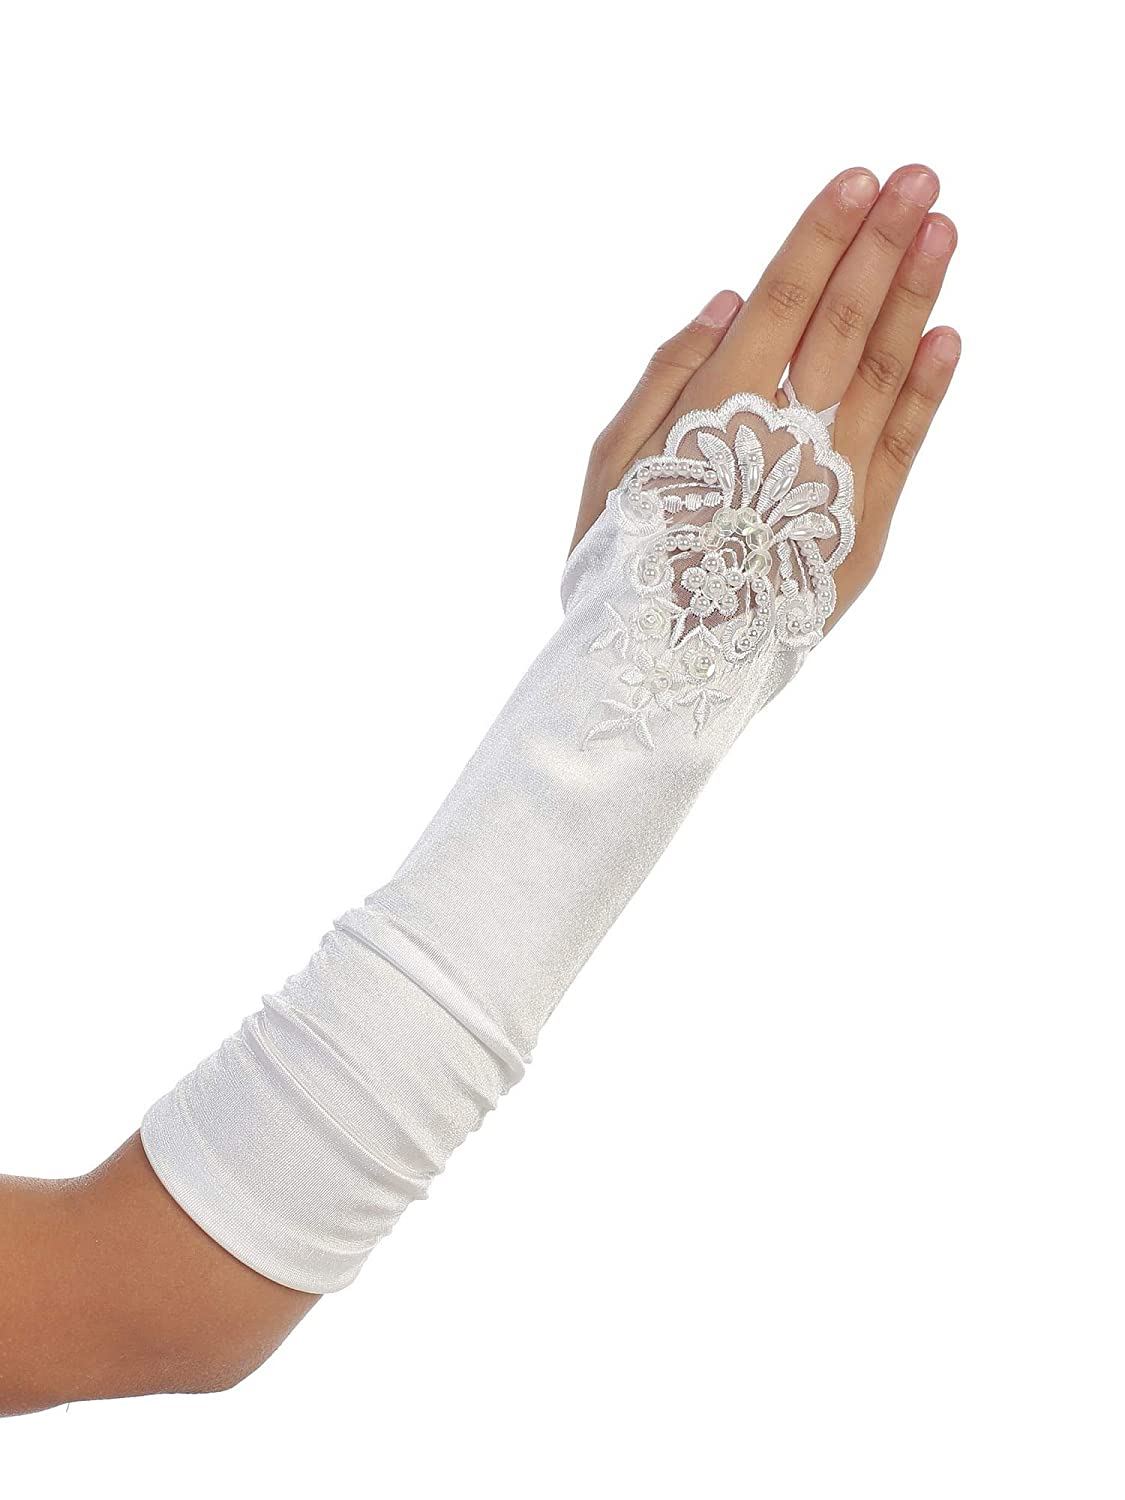 Girls White Floral Embroidery Fingerless Long Special Occasion Gloves 4-14